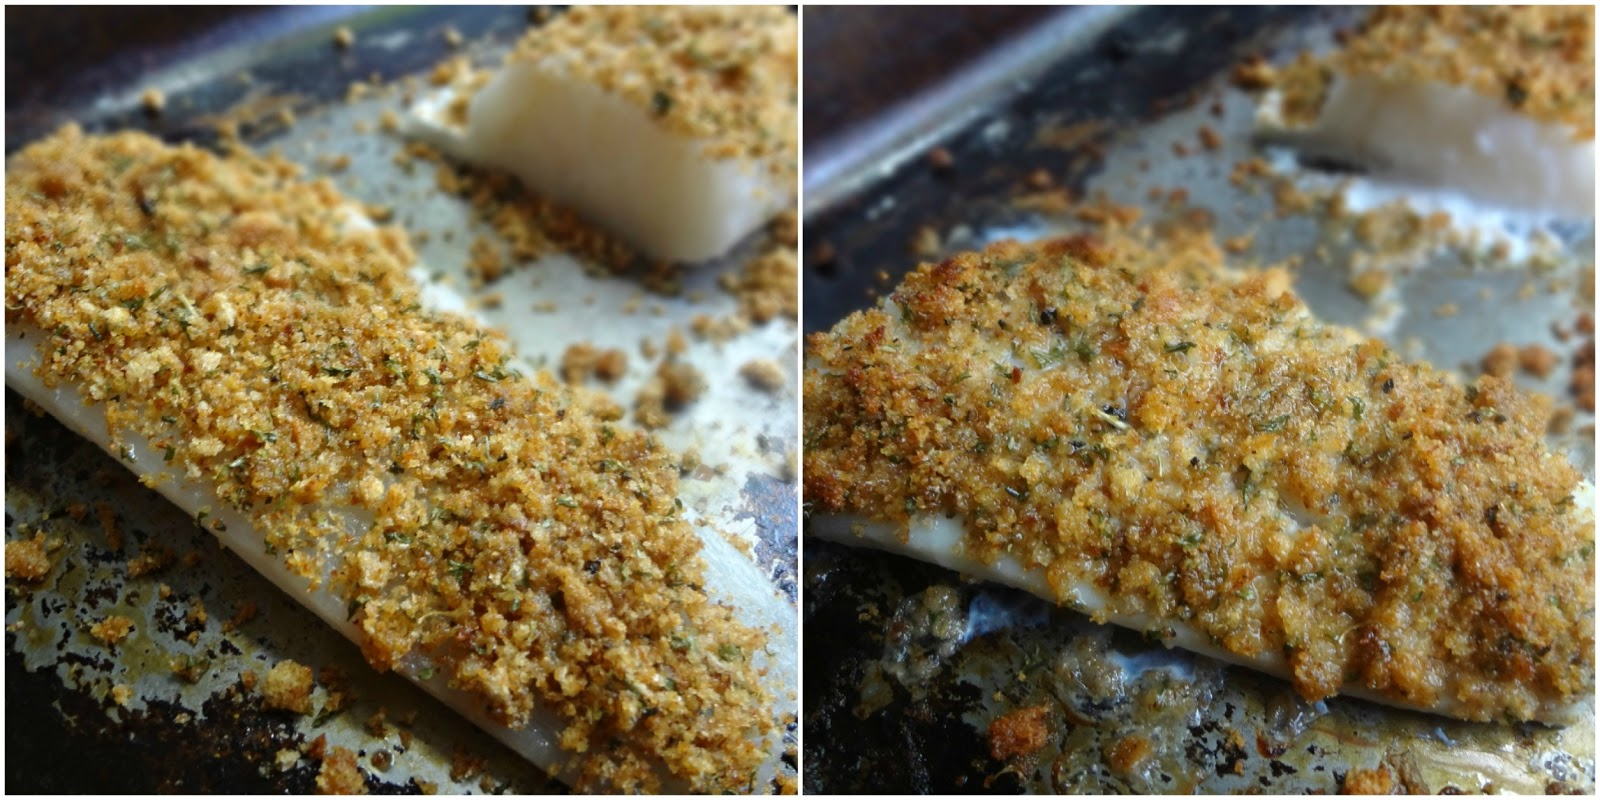 The cooking actress breadcrumb crusted cod for How to cook cod fish in a pan